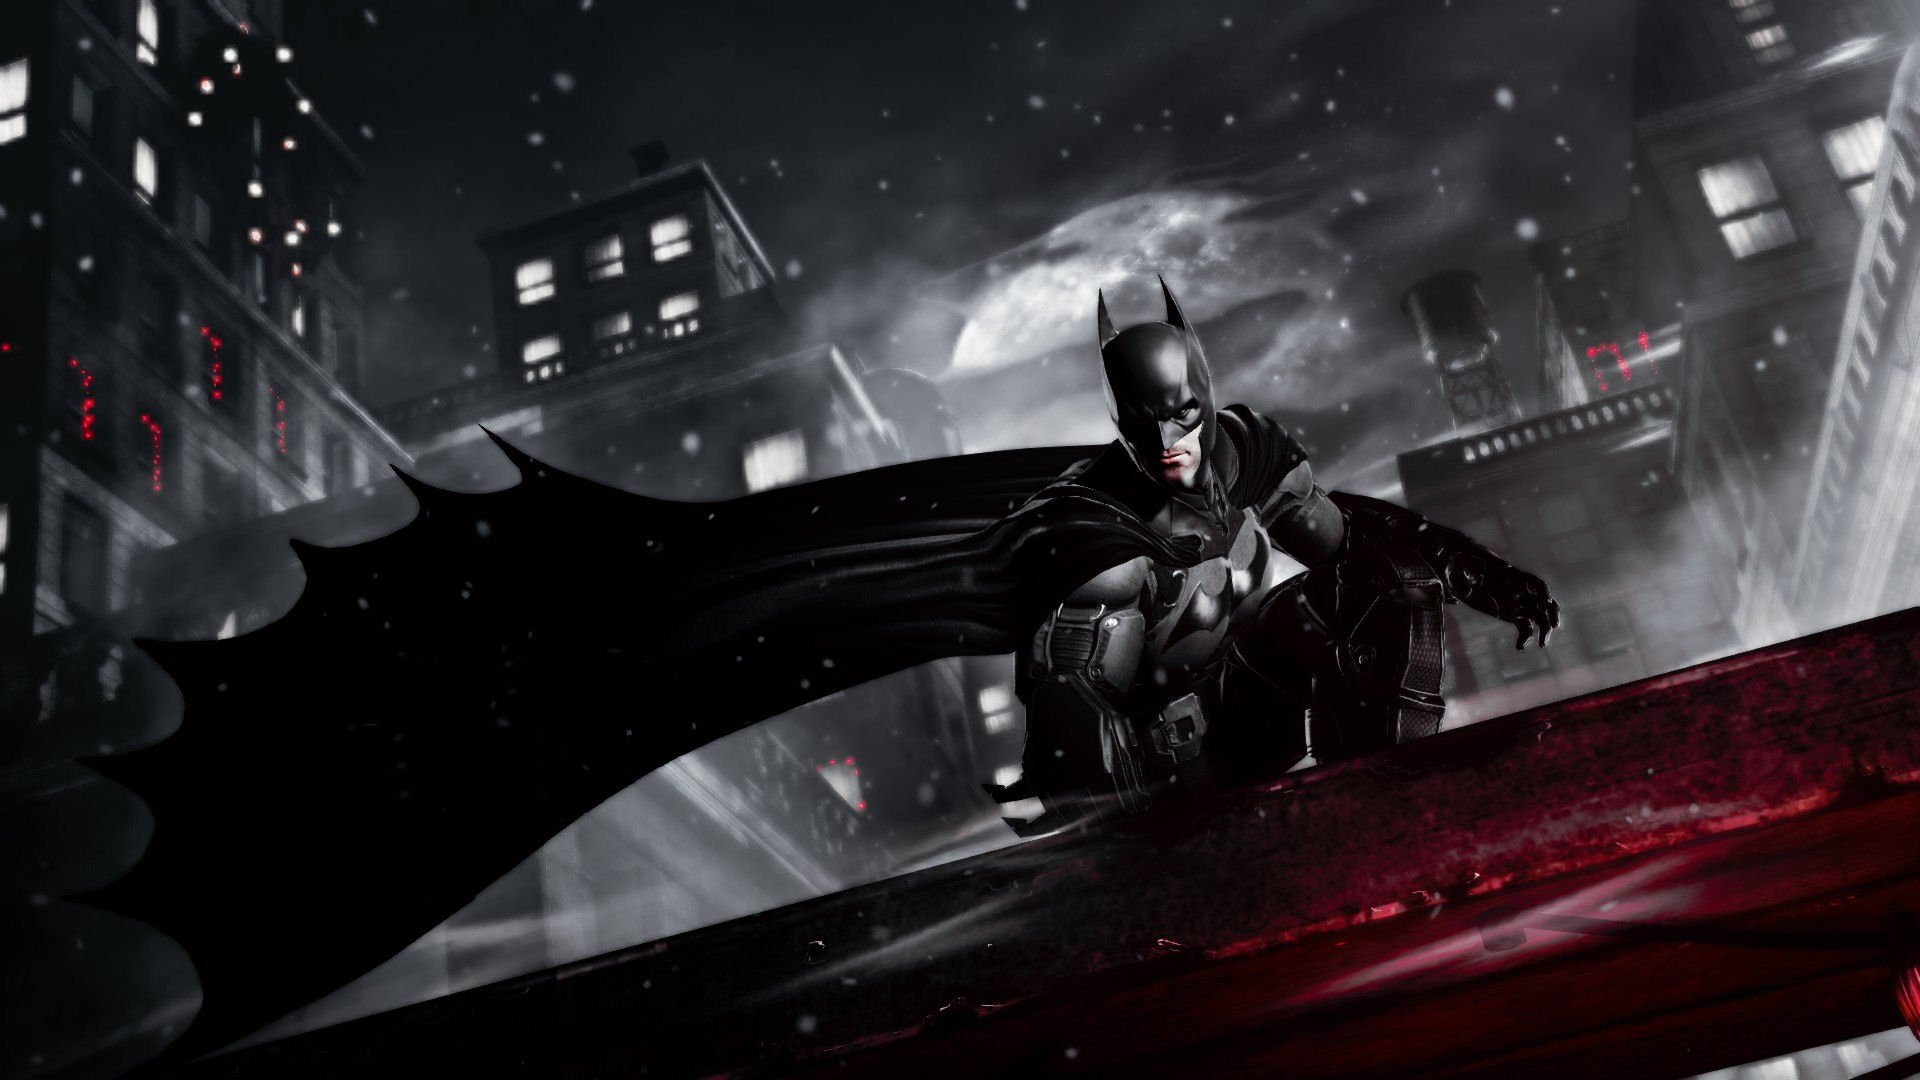 batman arkham origins hd wallpaper background image